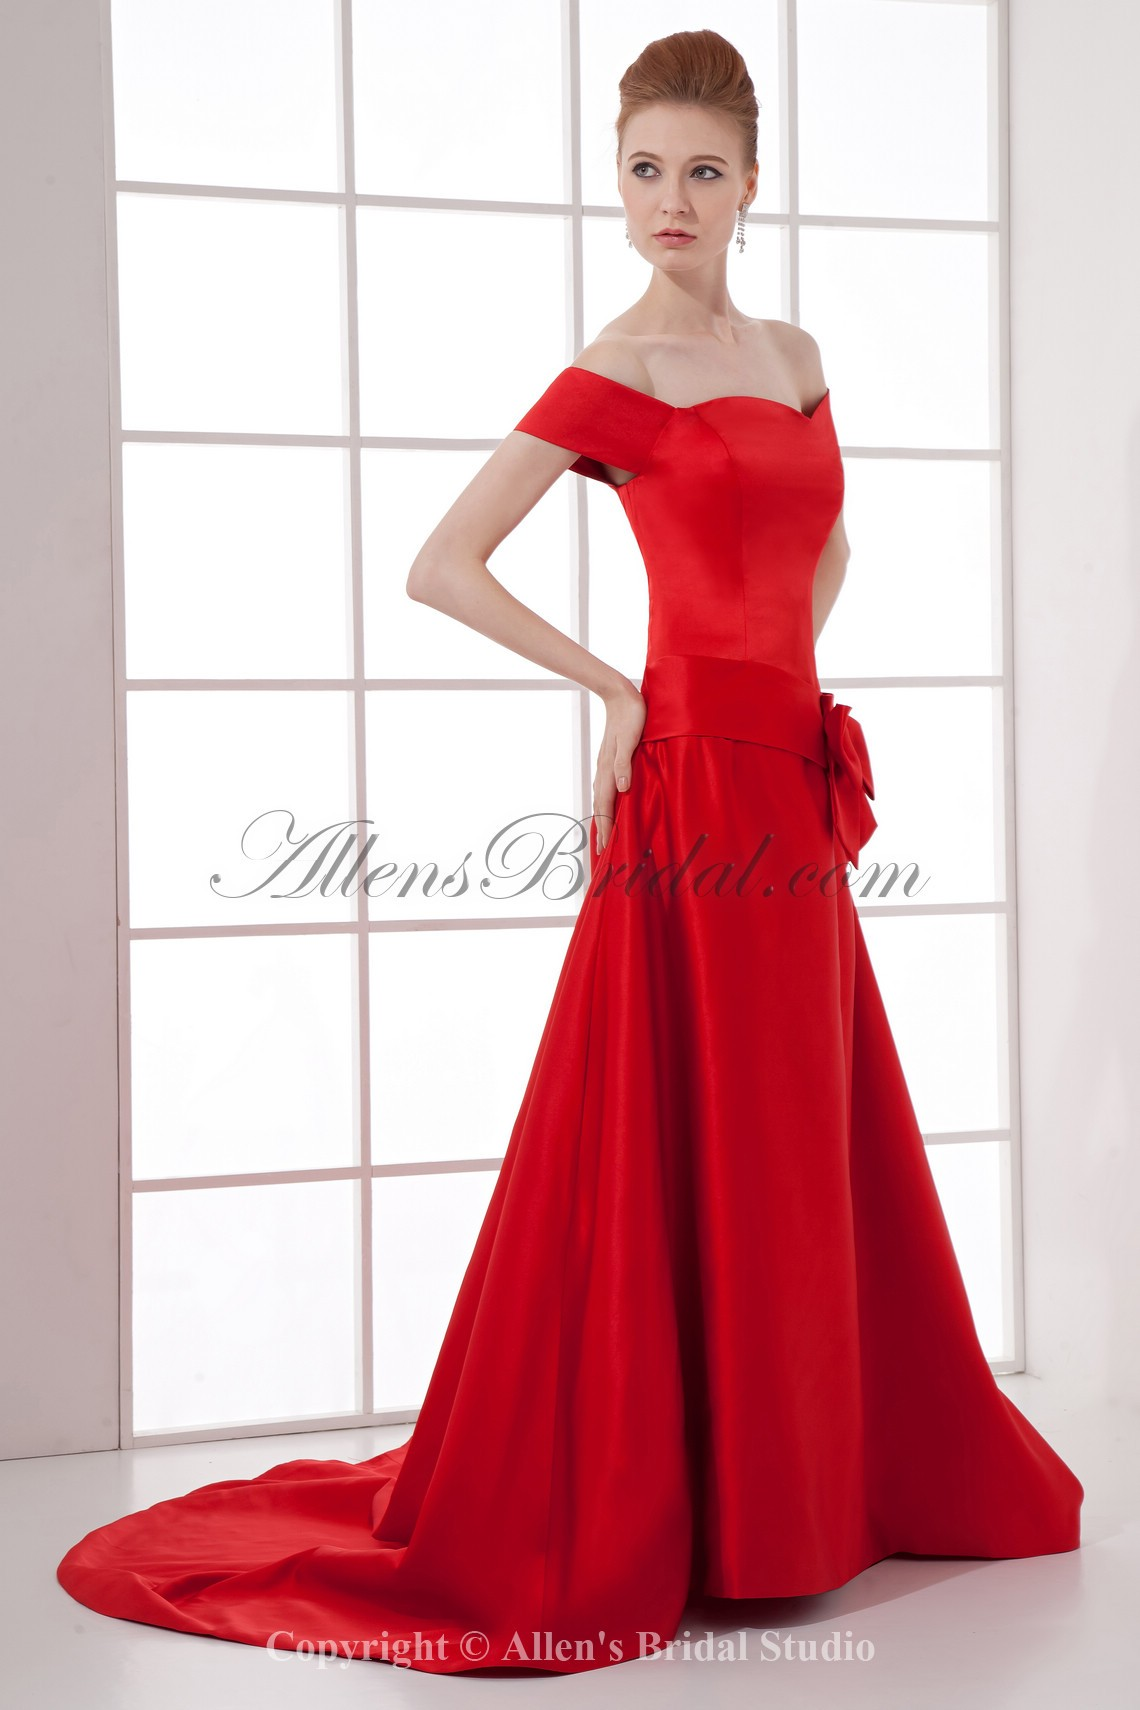 /107-852/satin-off-the-shoulder-neckline-a-line-chapel-train-bow-prom-dress.jpg